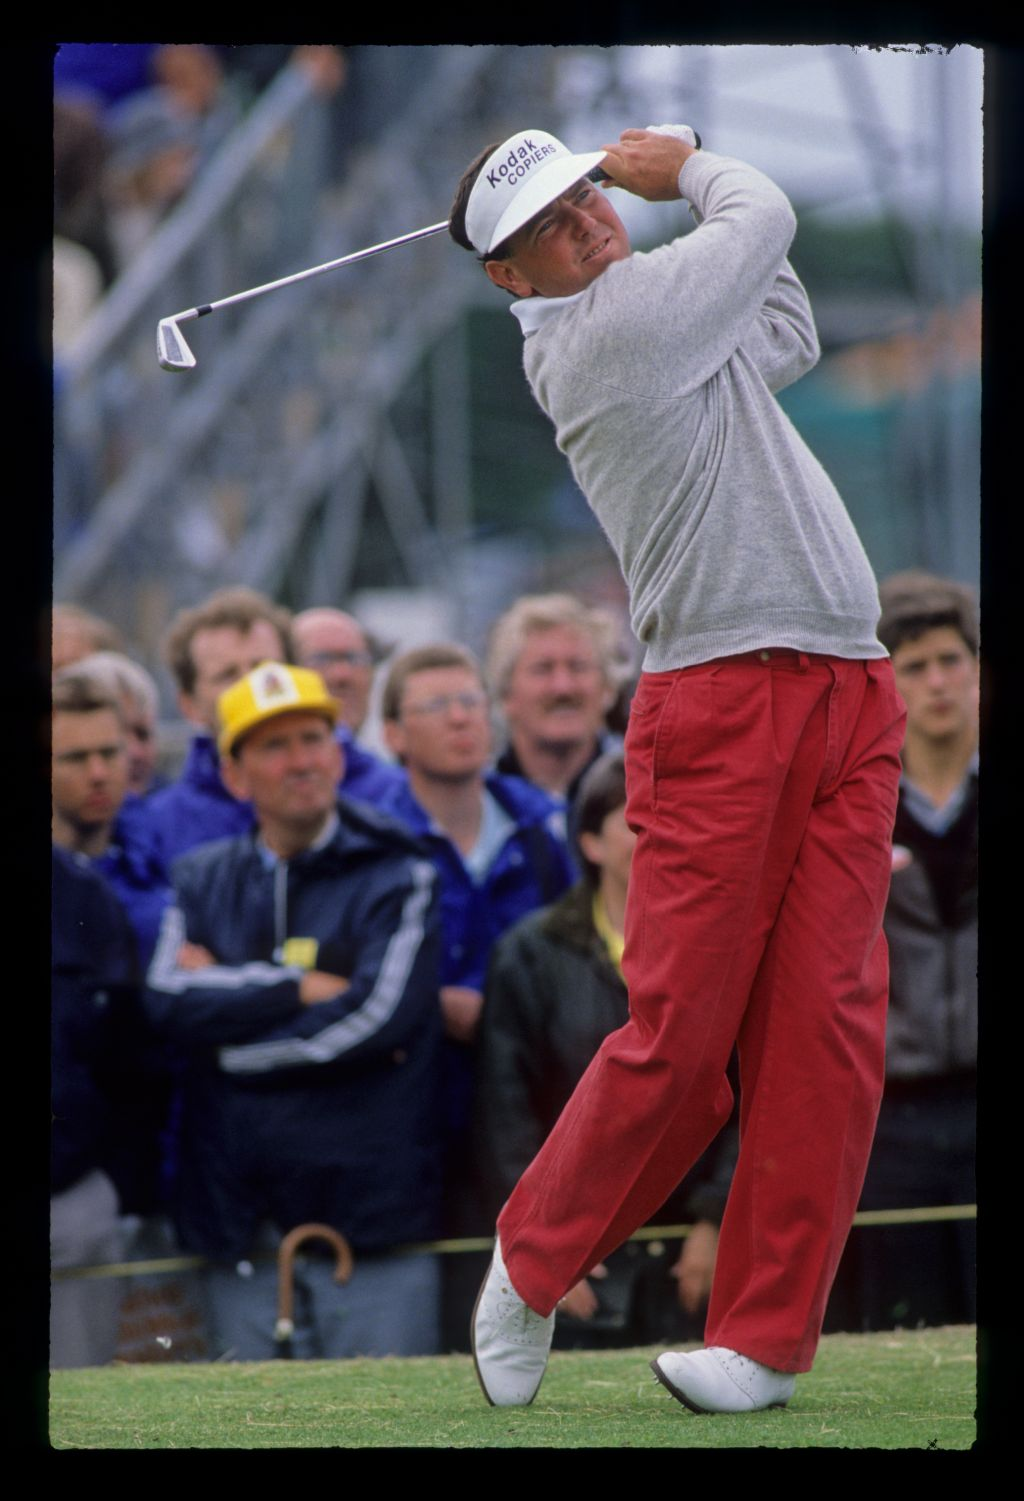 Mark O'Meara following through on the tee during the 1988 Open Championship